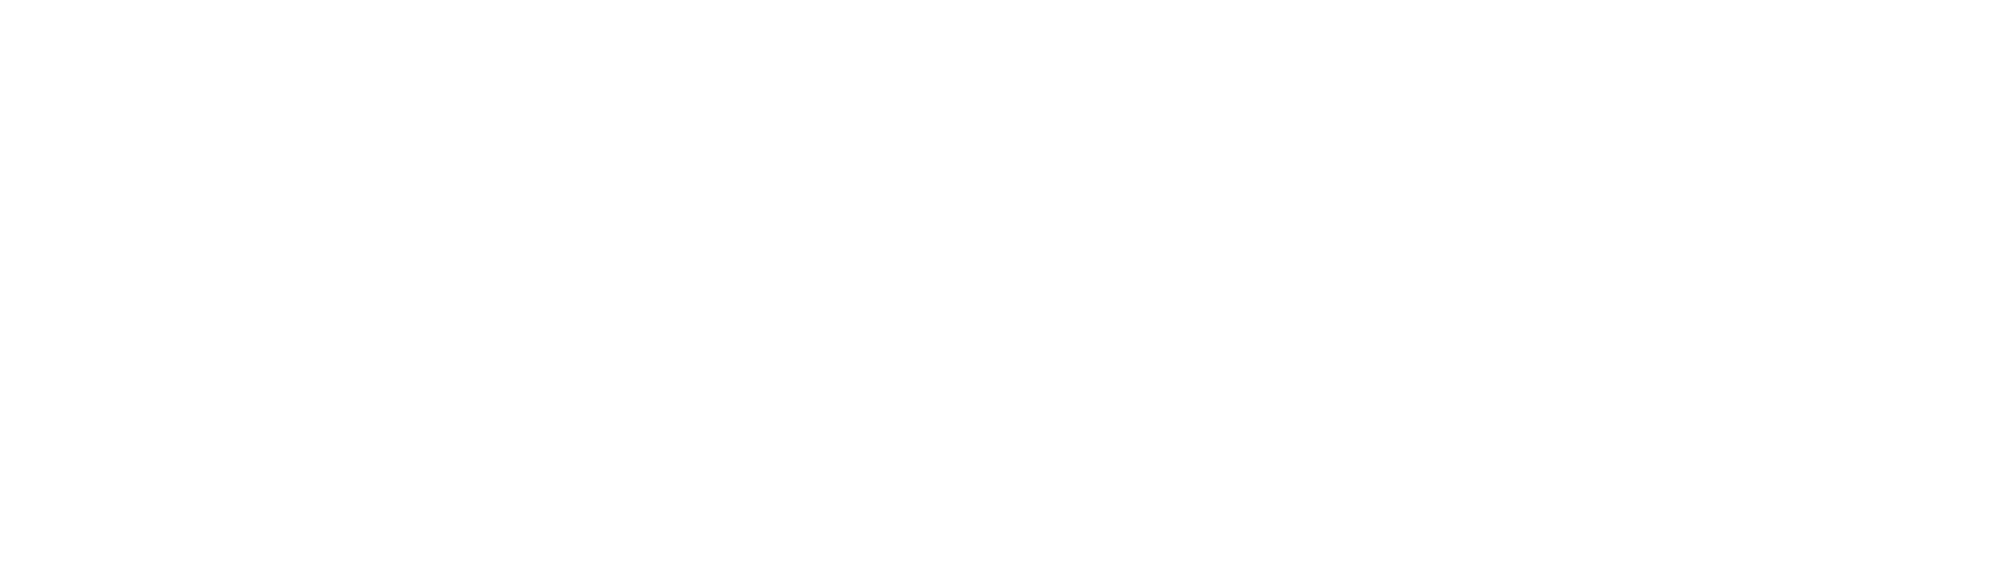 Lausitz-Timing Logo